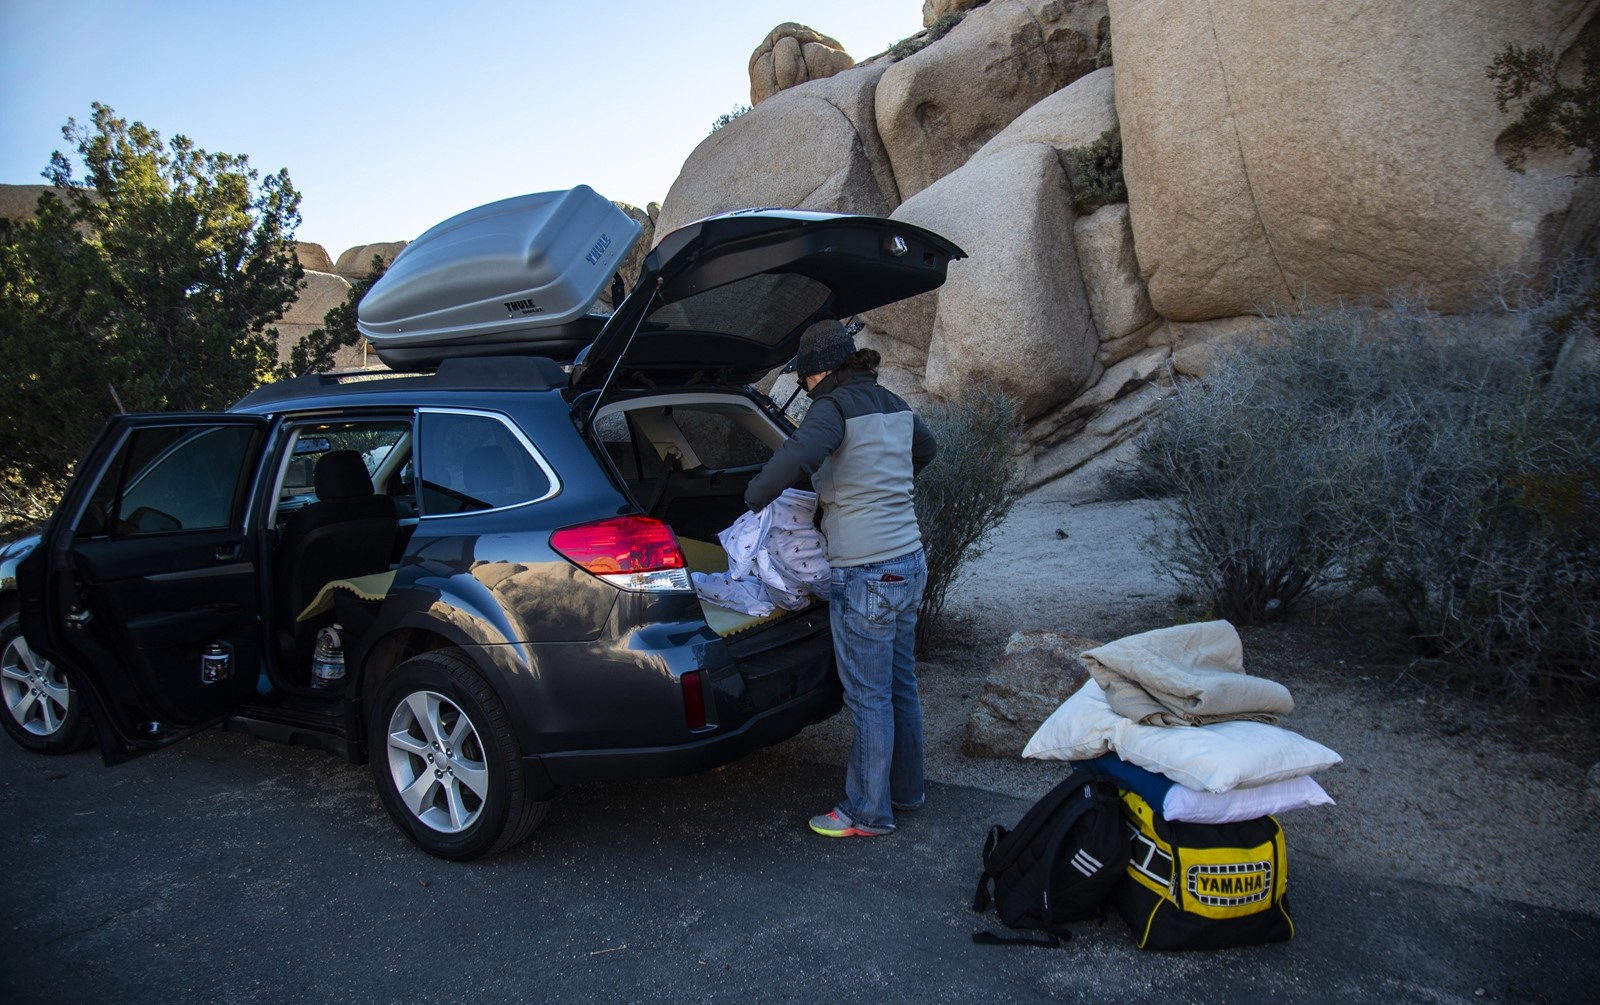 At Joshua Tree National Park, Natalie Elsman of Iowa packs her car at Jumbo Rocks after getting word on Tuesday that campgrounds were closing. — Photograph: Gina Ferazzi/Los Angeles Times.